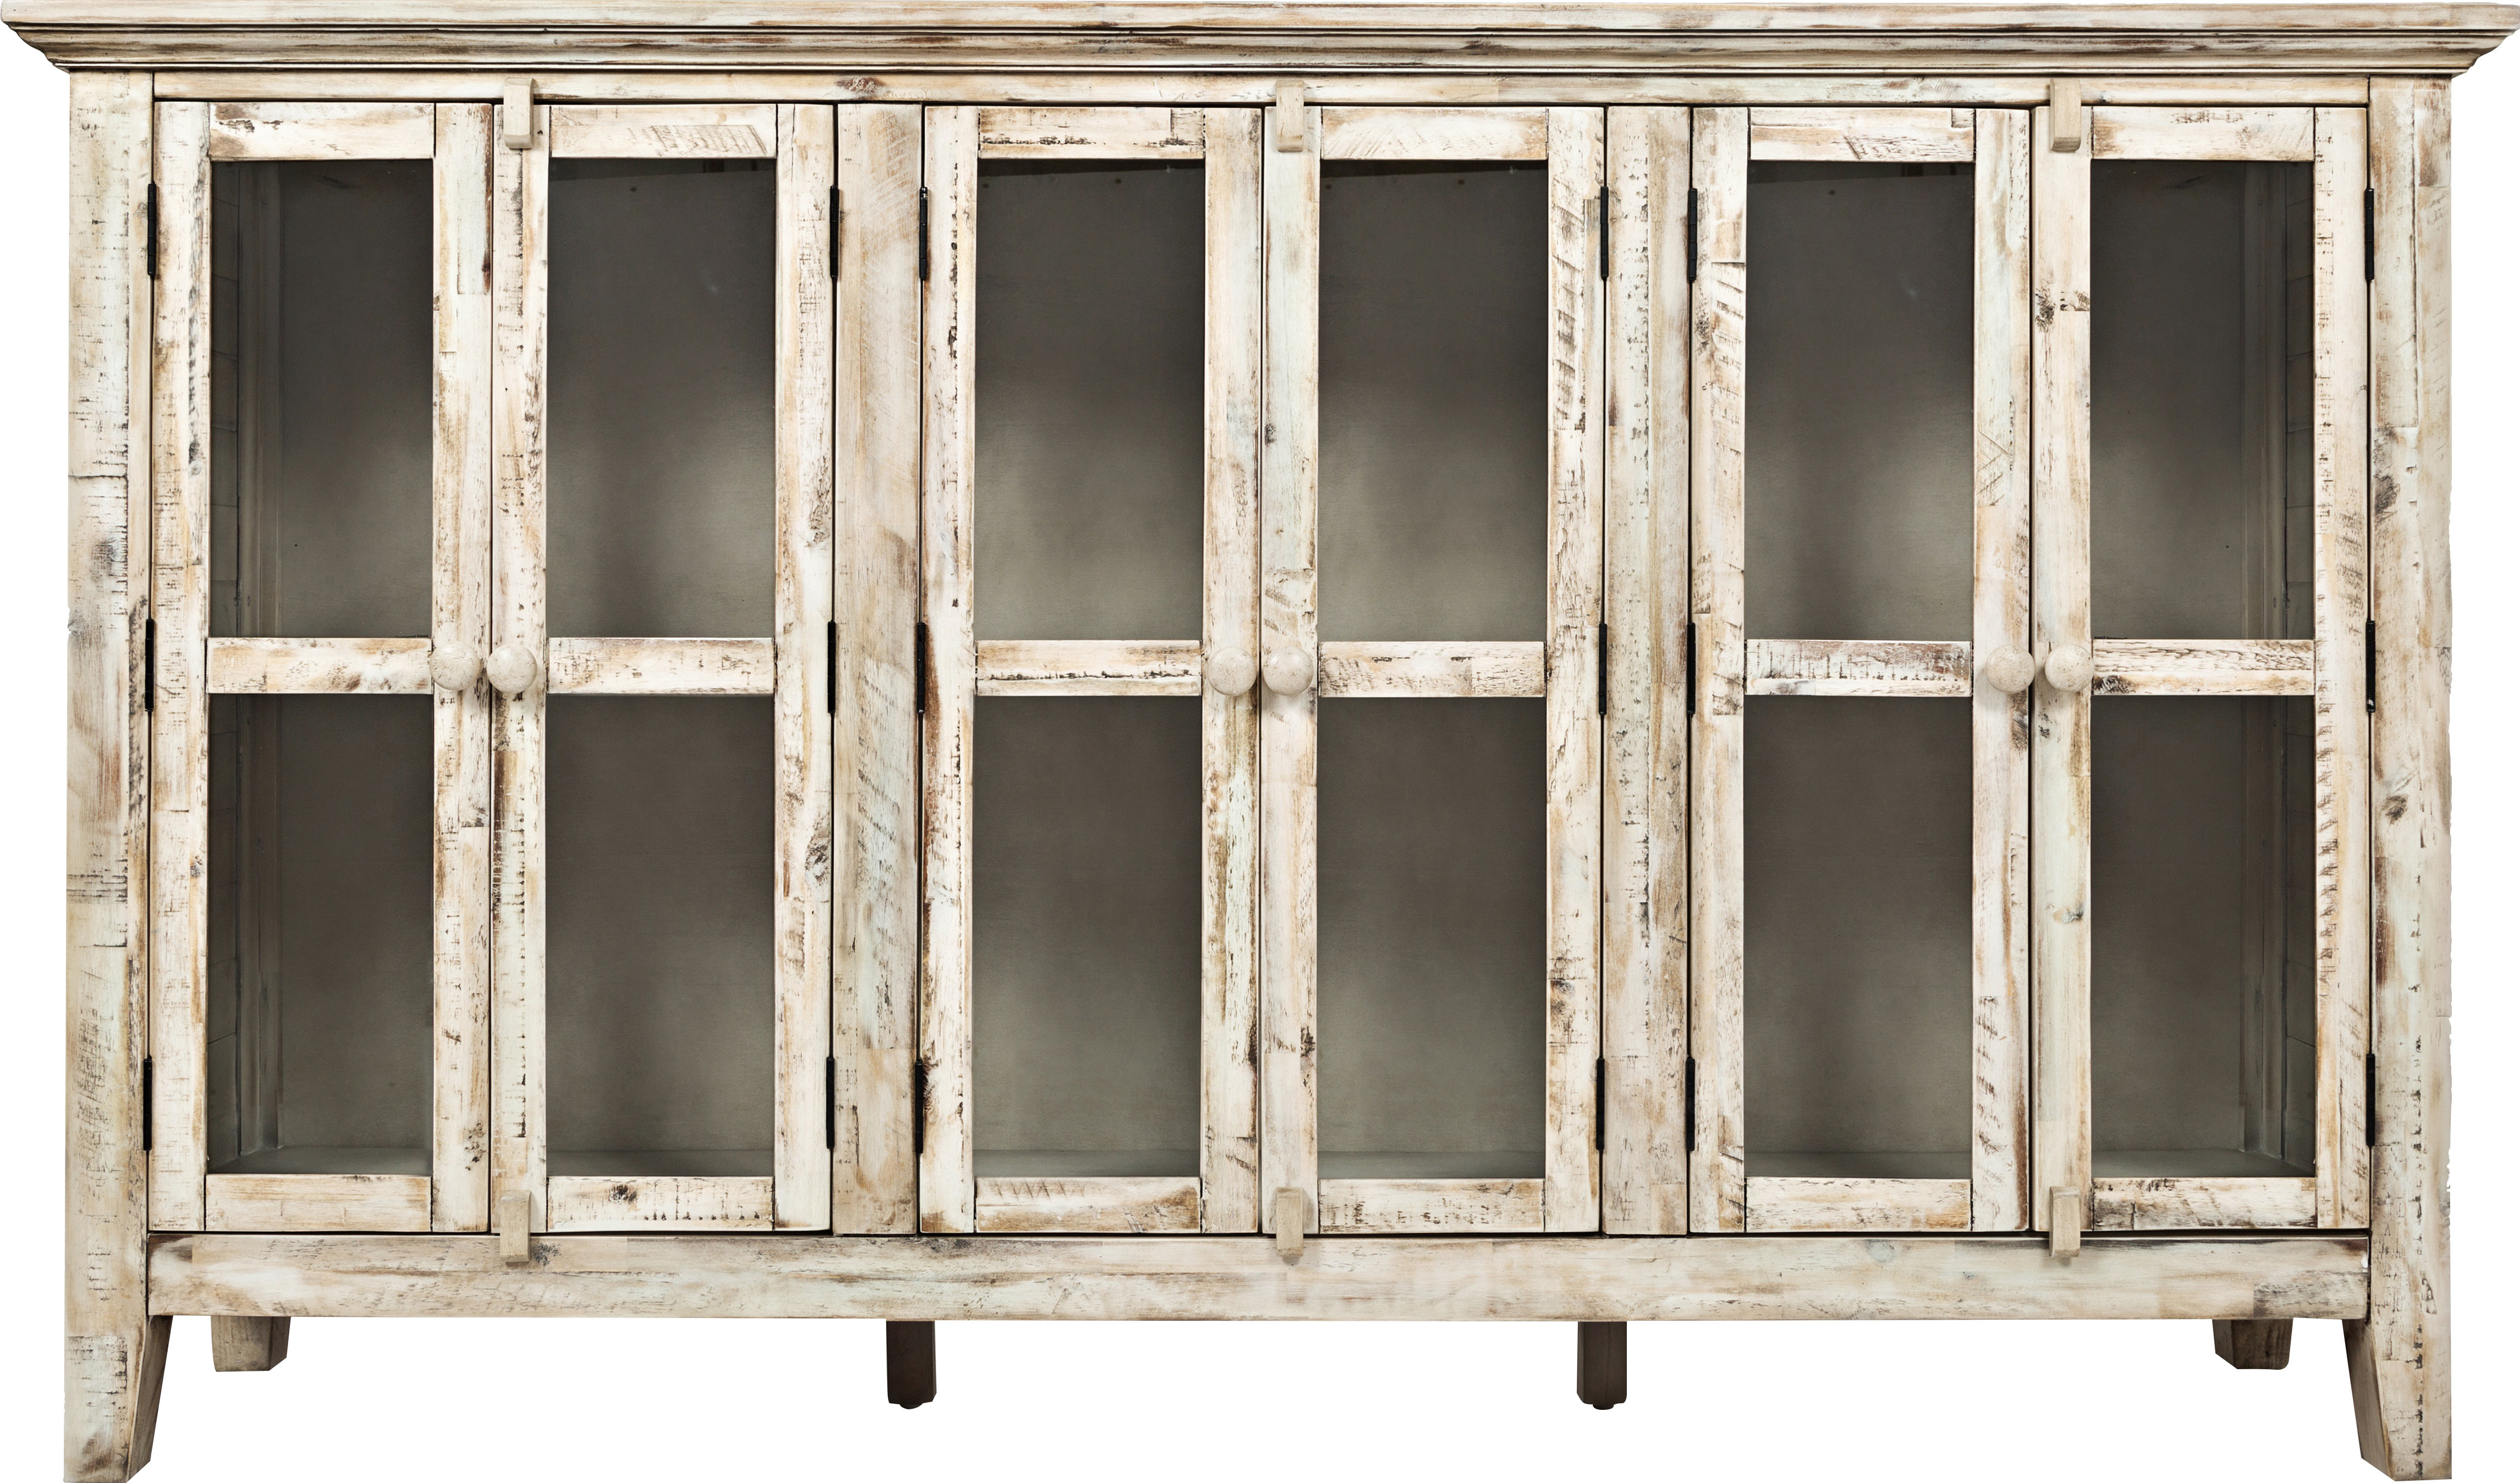 Farmhouse & Rustic Accent Chests & Cabinets | Birch Lane inside Kara 4 Door Accent Cabinets (Image 14 of 30)